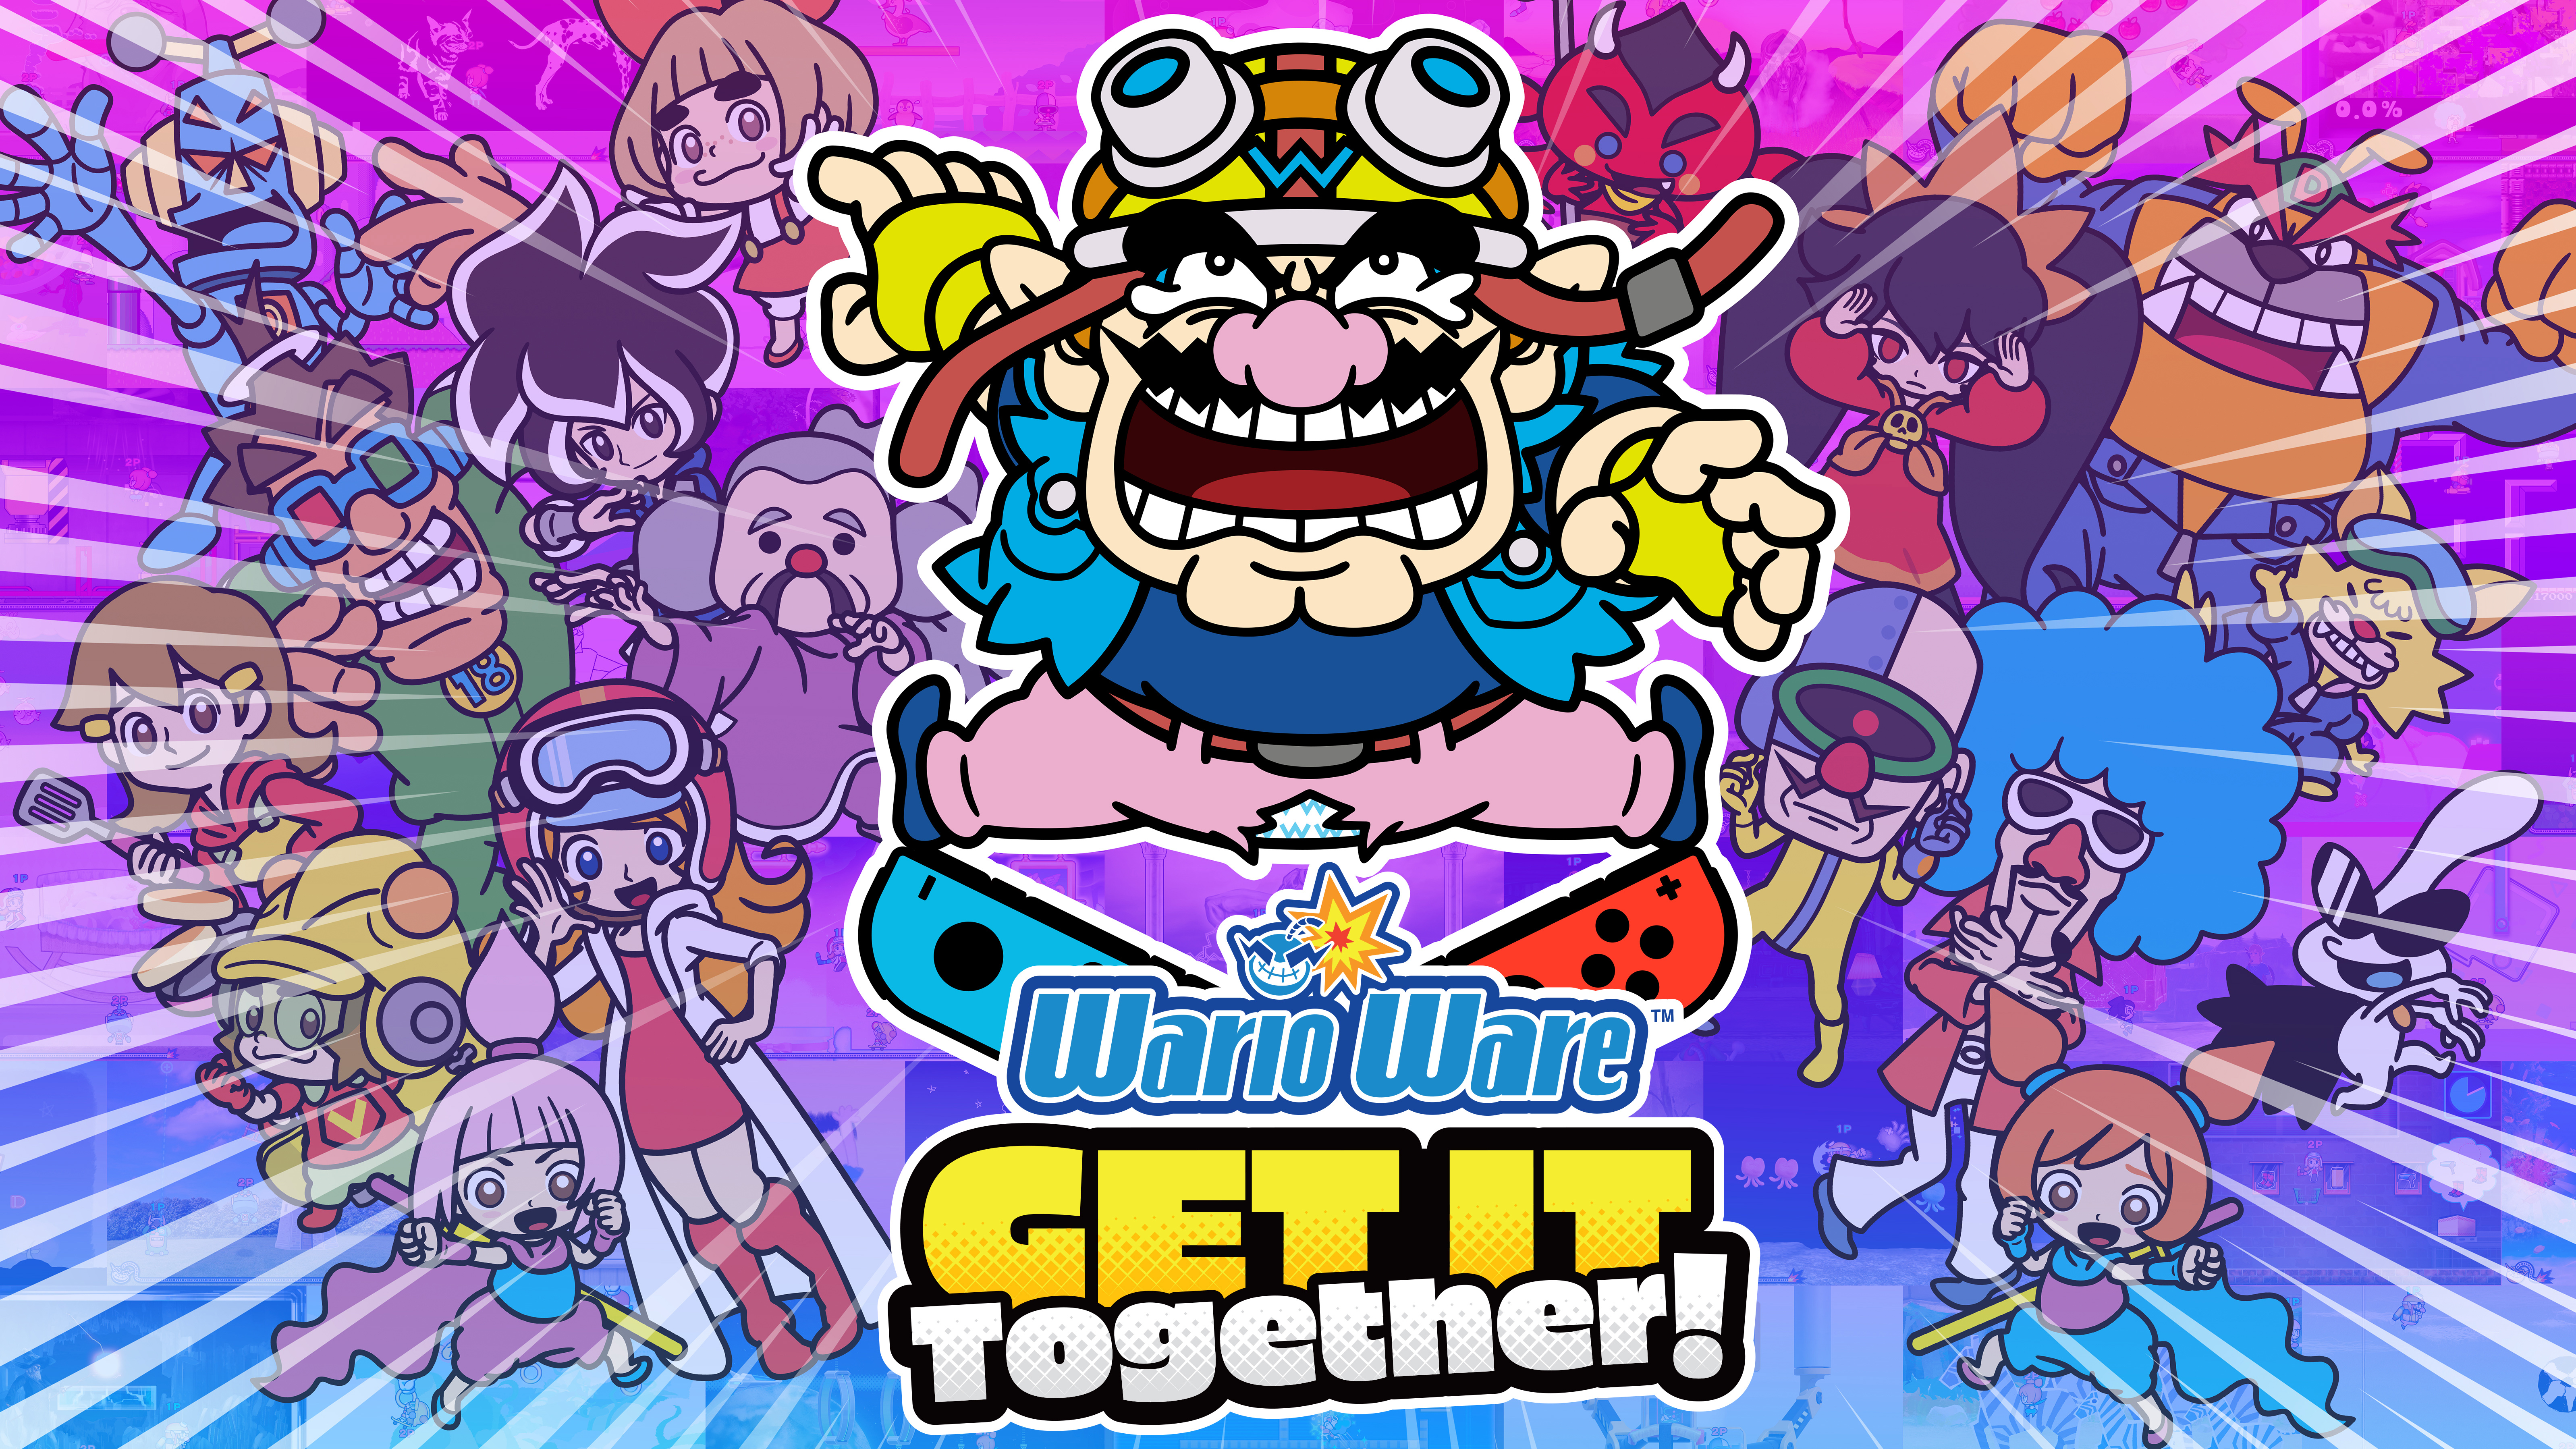 key art for WarioWare: Get It Together! featuring the game's logo, Wario, red and blue Nintendo Switch Joy-Cons, and all kinds of WarioWare characters